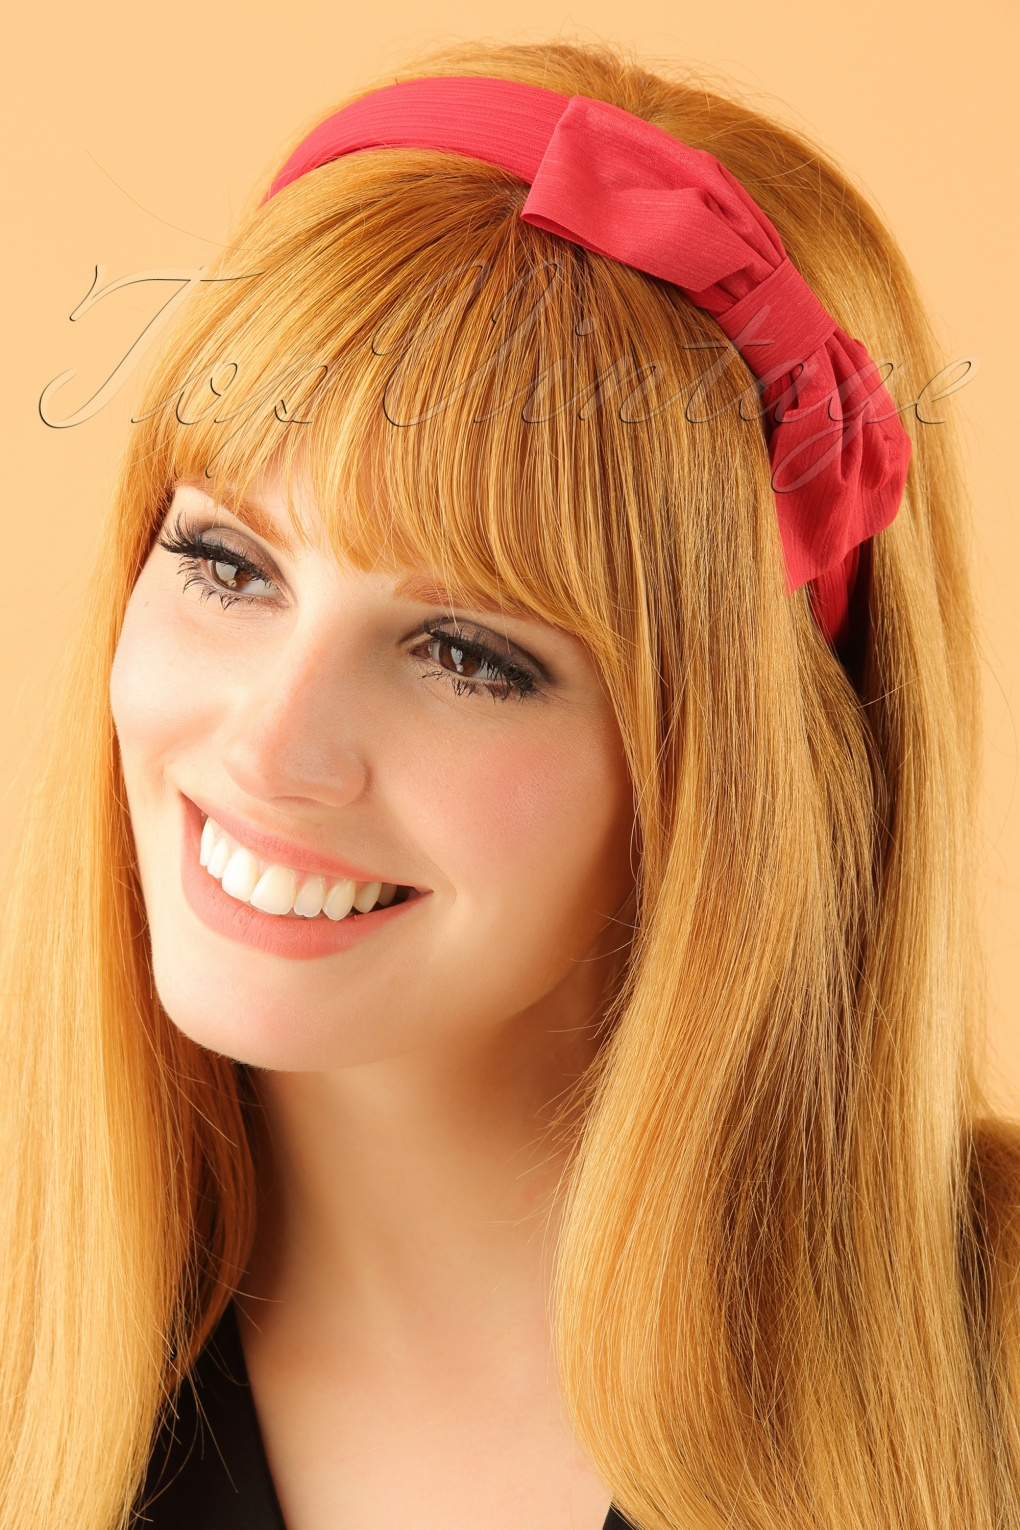 Vintage Hair Accessories: Combs, Headbands, Flowers, Scarf, Wigs 50s Bow Head Band in Red £6.18 AT vintagedancer.com